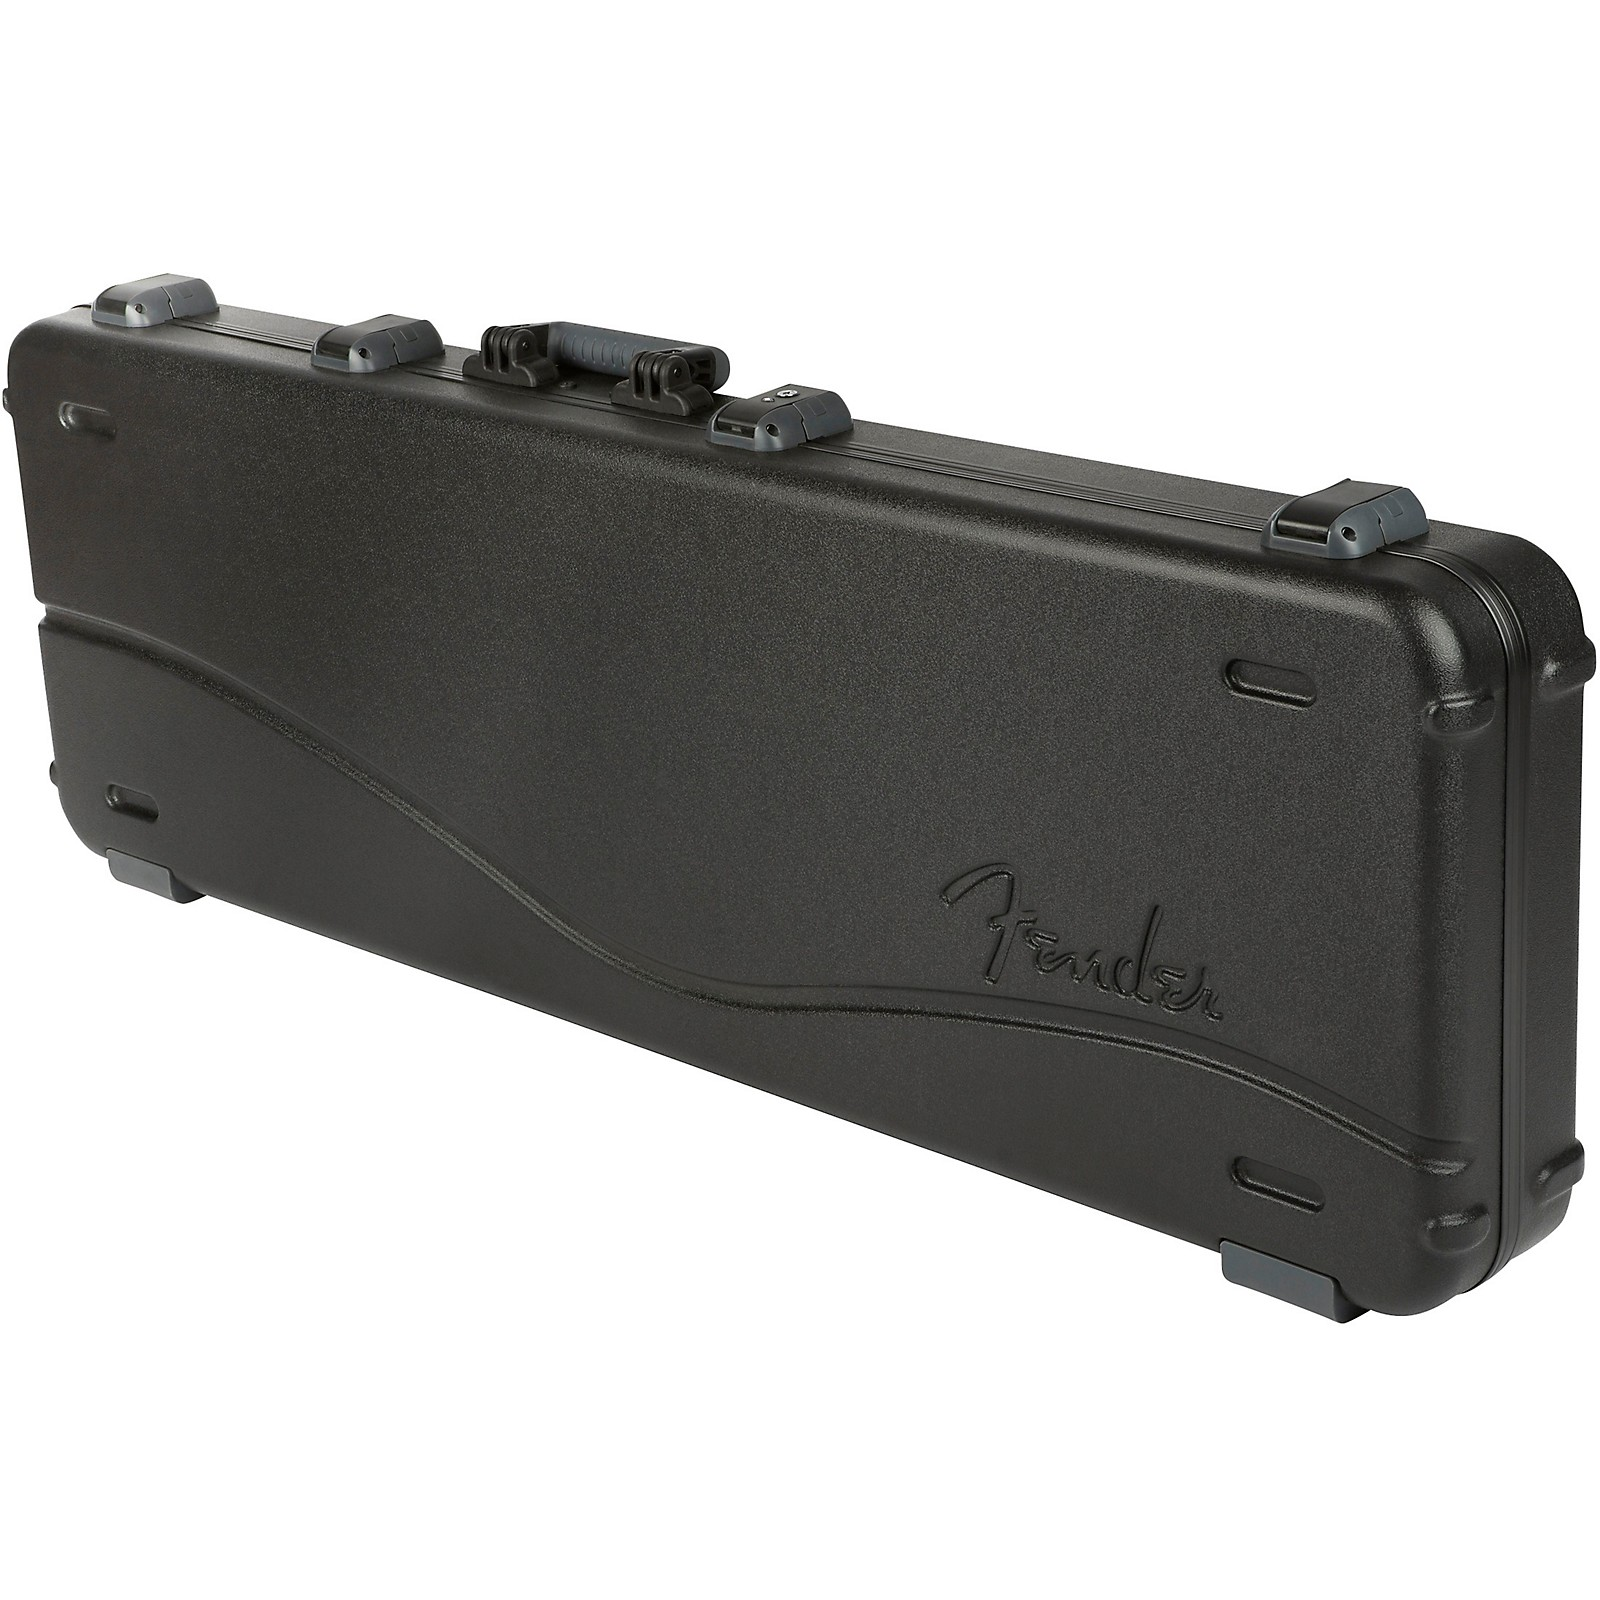 Fender Deluxe Molded ABS P/J Bass Guitar Case